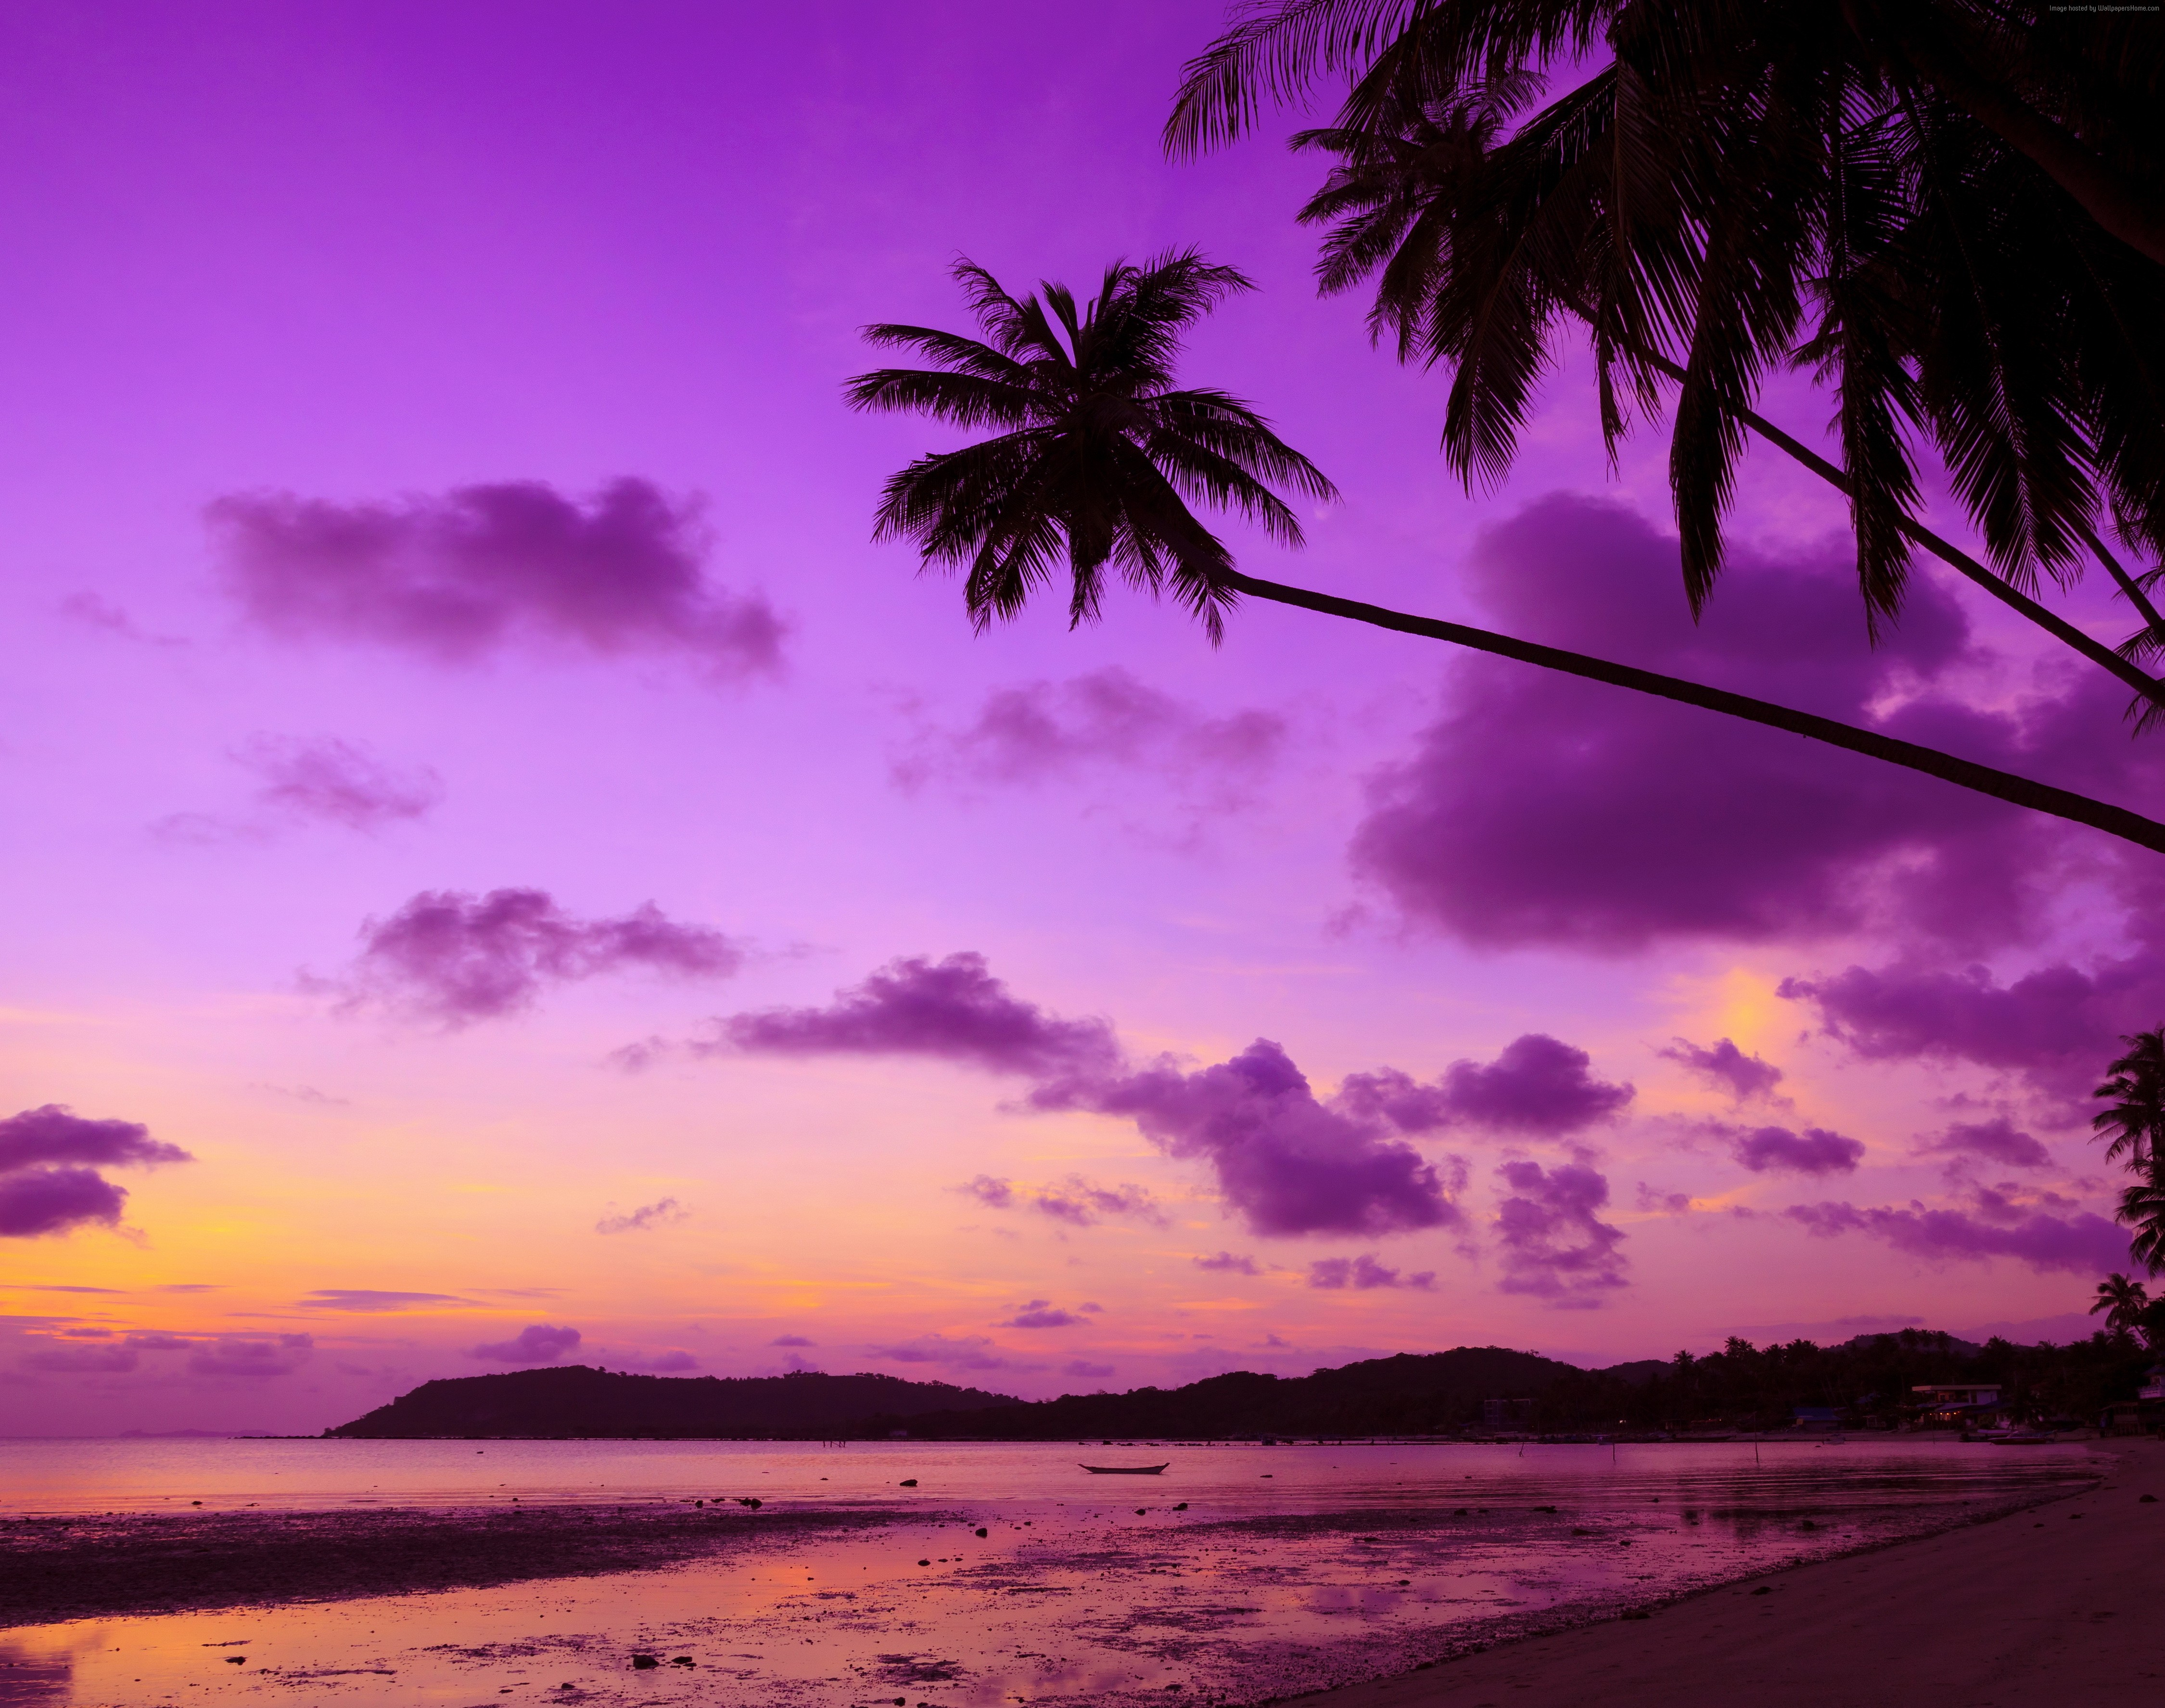 purple palm tree hd nature 4k wallpapers images backgrounds